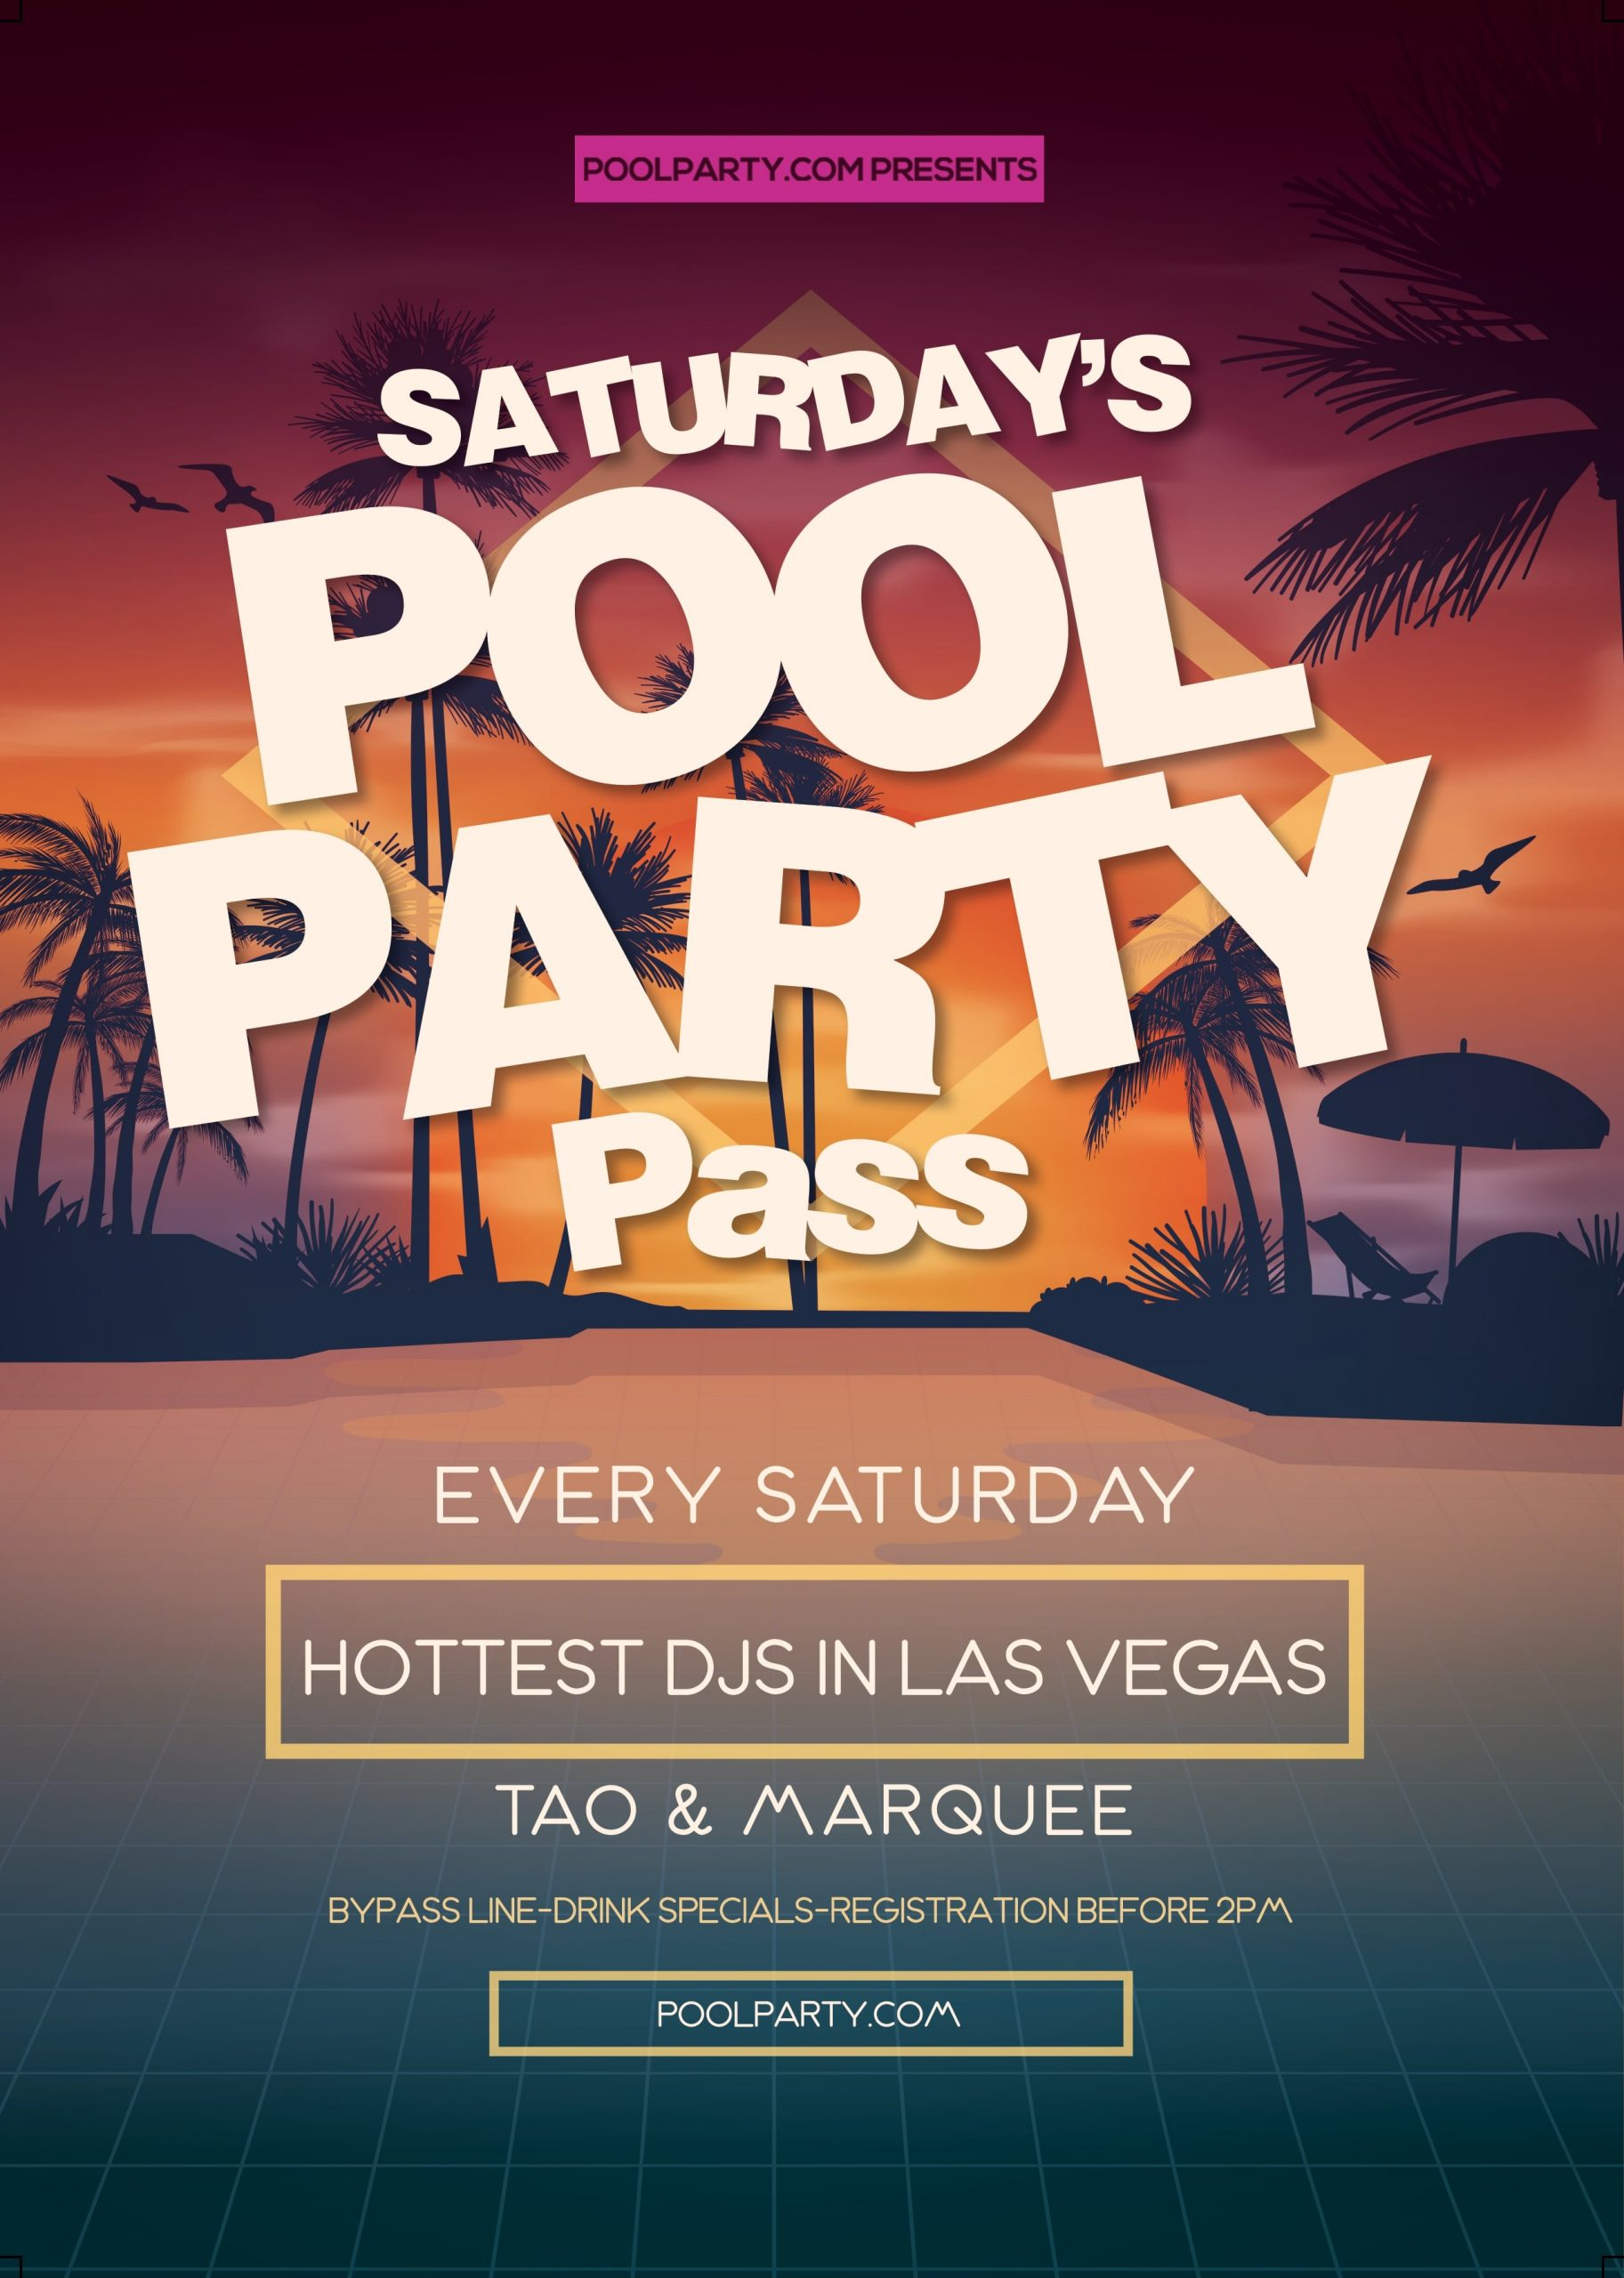 Saturday's Pool Party Pass (April 25th 2020)